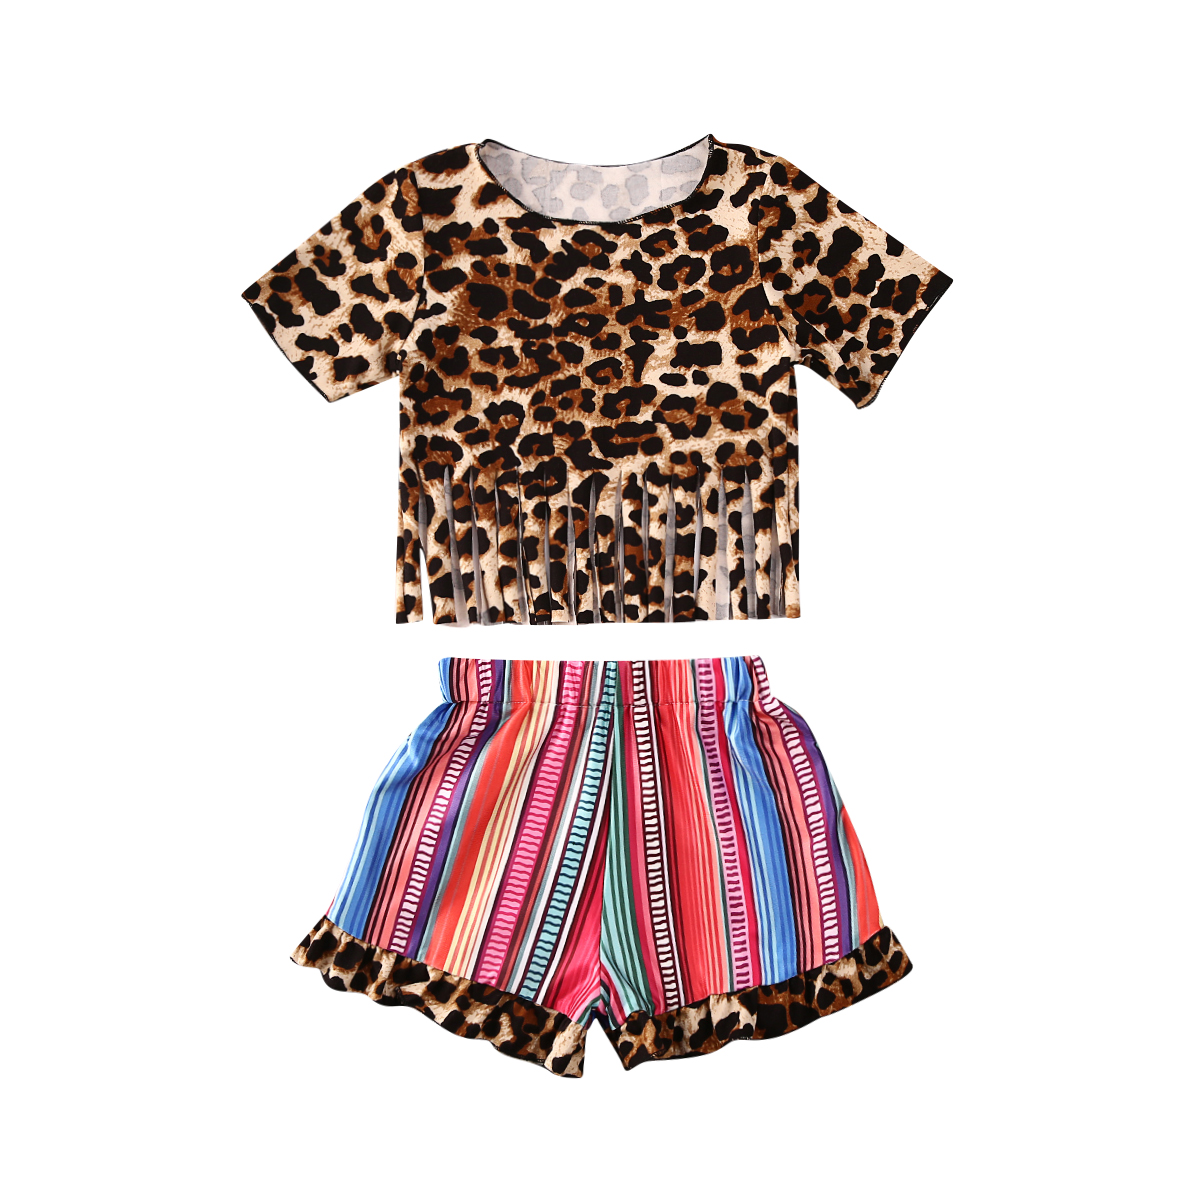 2020 Summer Toddler Kids Girls Clothes Sets Leopard Print Short Sleeve T Shirts Tops Striped Tassel Shorts